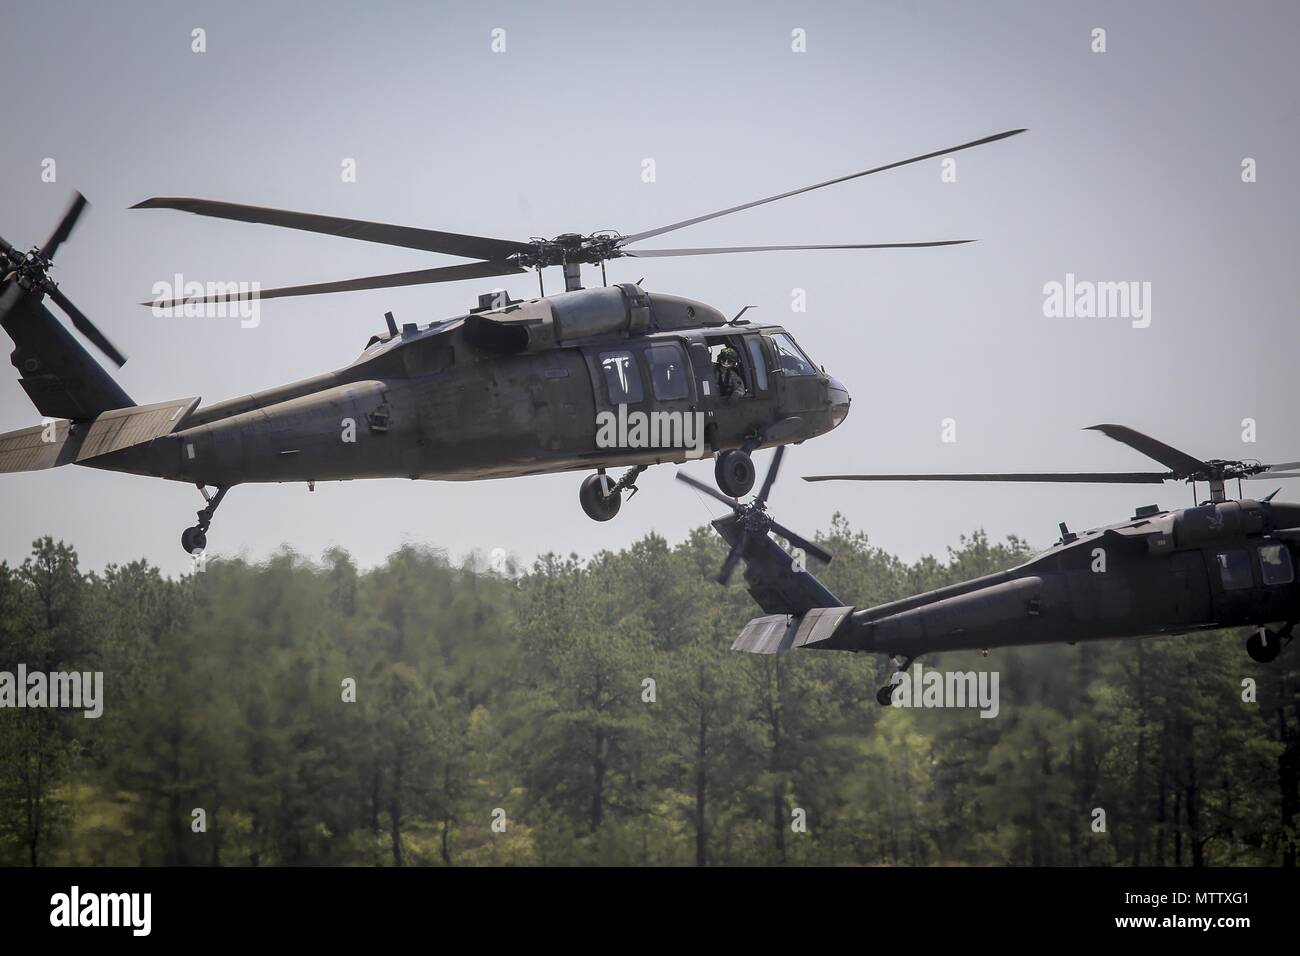 New Jersey Army National Guard UH-60L Black Hawk helicopters from the 1st Assault Helicopter Battalion, 150th Aviation Regiment lift off for a flight at Joint Base McGuire-Dix-Lakehurst, N.J. May 15, 2018, May 15, 2018. (U.S. Air National Guard photo by Master Sgt. Matt Hecht). () Stock Photo